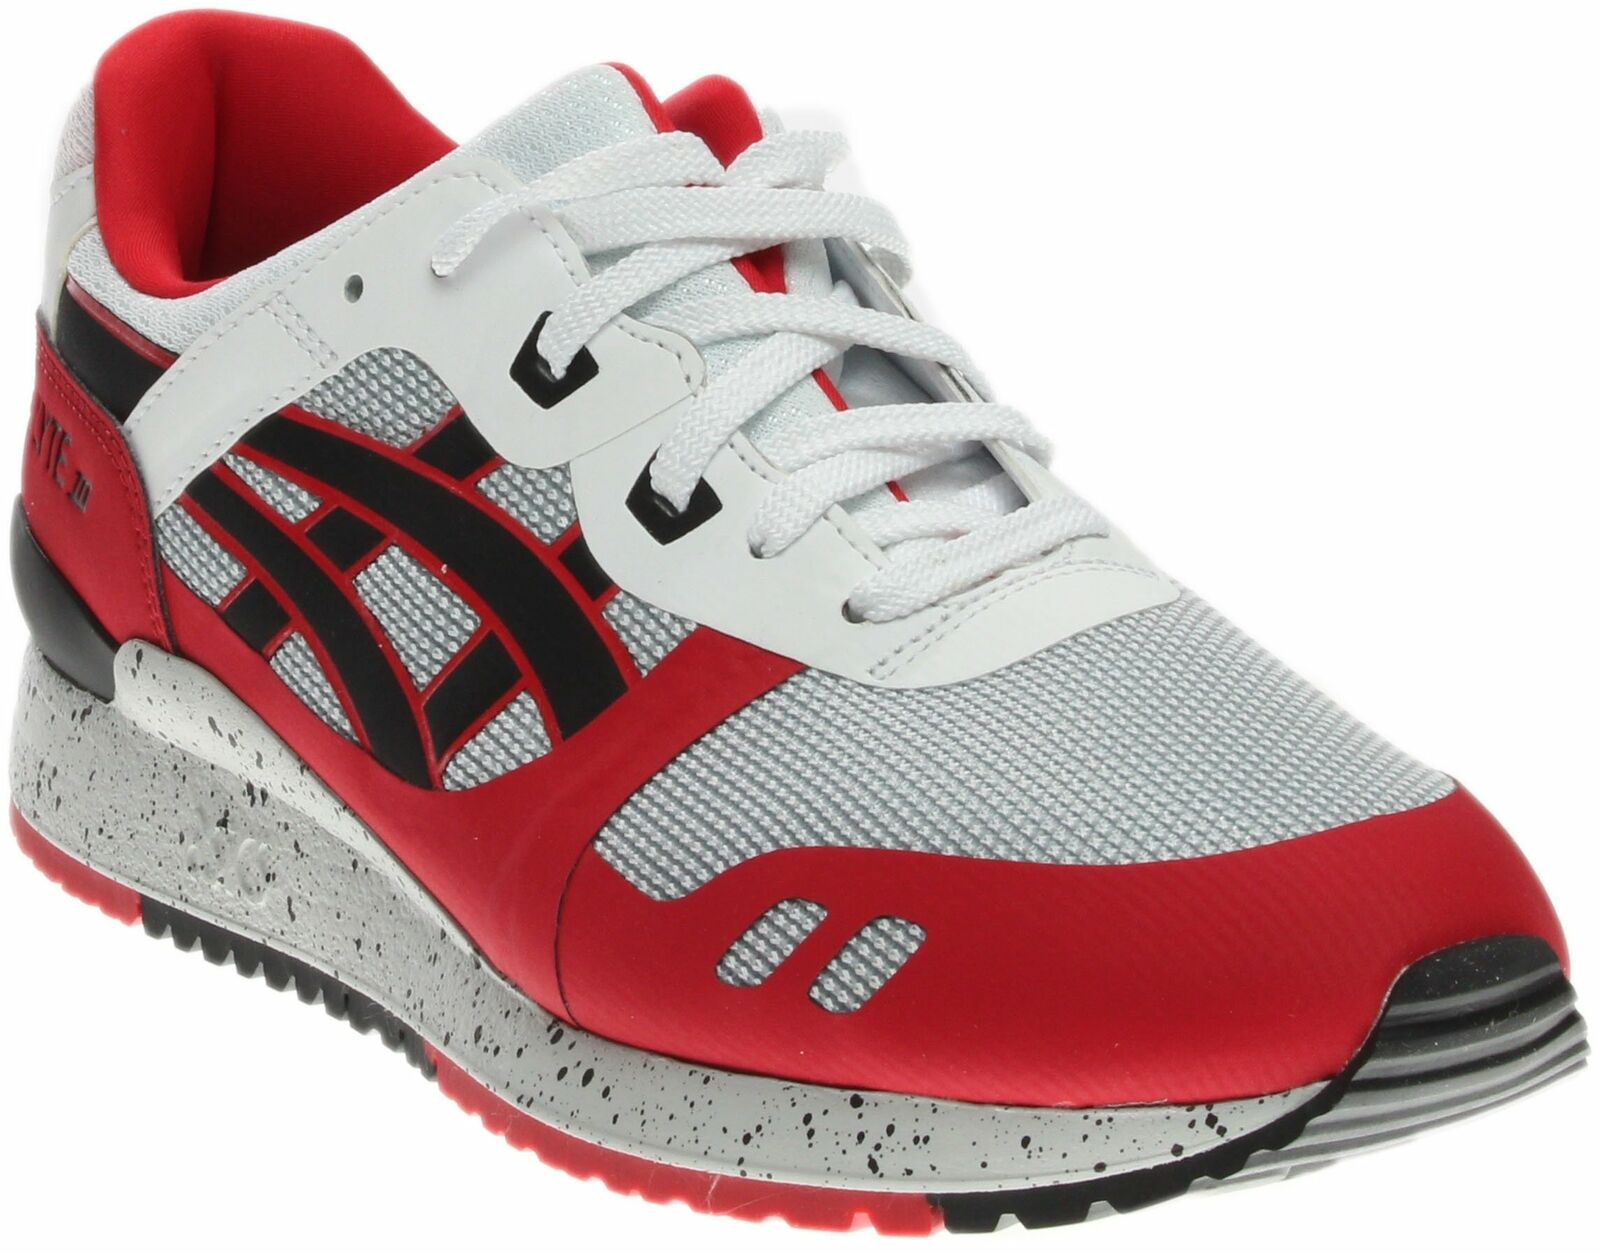 25ef3a3d7e621 GEL-Lyte III NS Running shoes - White - Mens ASICS nuxrhe175 ...